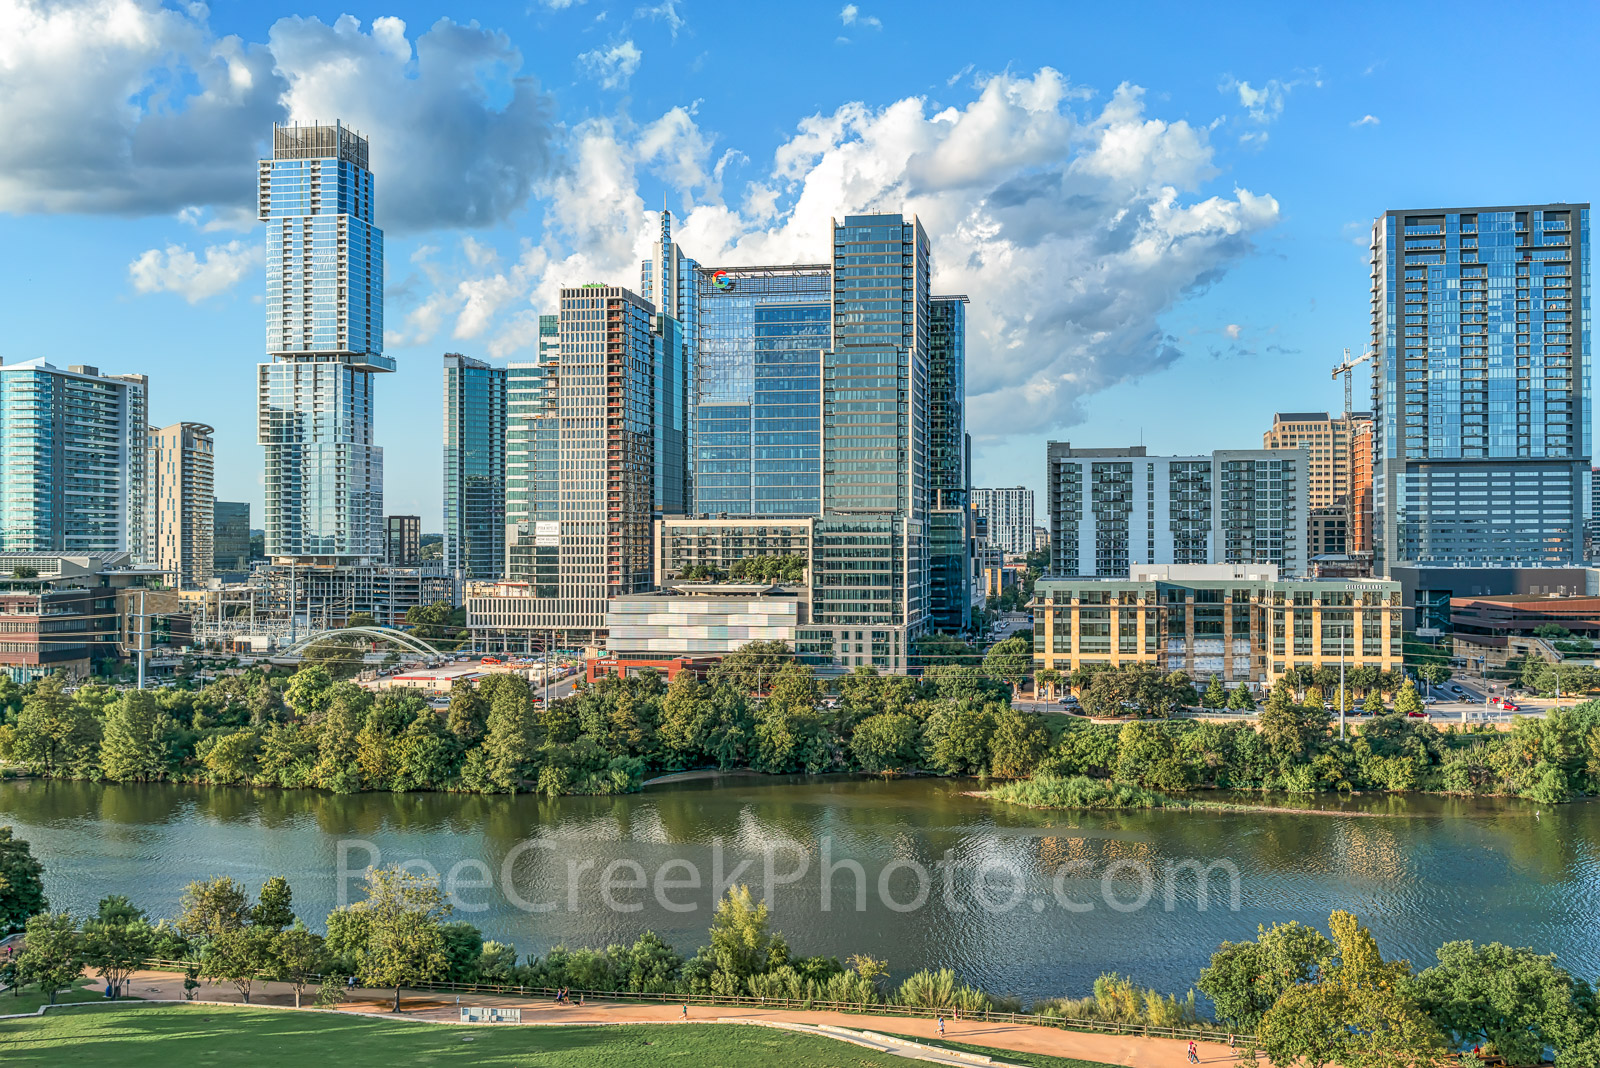 Aerial Austin Skyline, Austin, skyline, aerial, lady bird lake, hike and bike trail, cityscape, water, tallest building, Independent, Jingle, Google, Northshore Condos, W, building, city, sky-scrapers